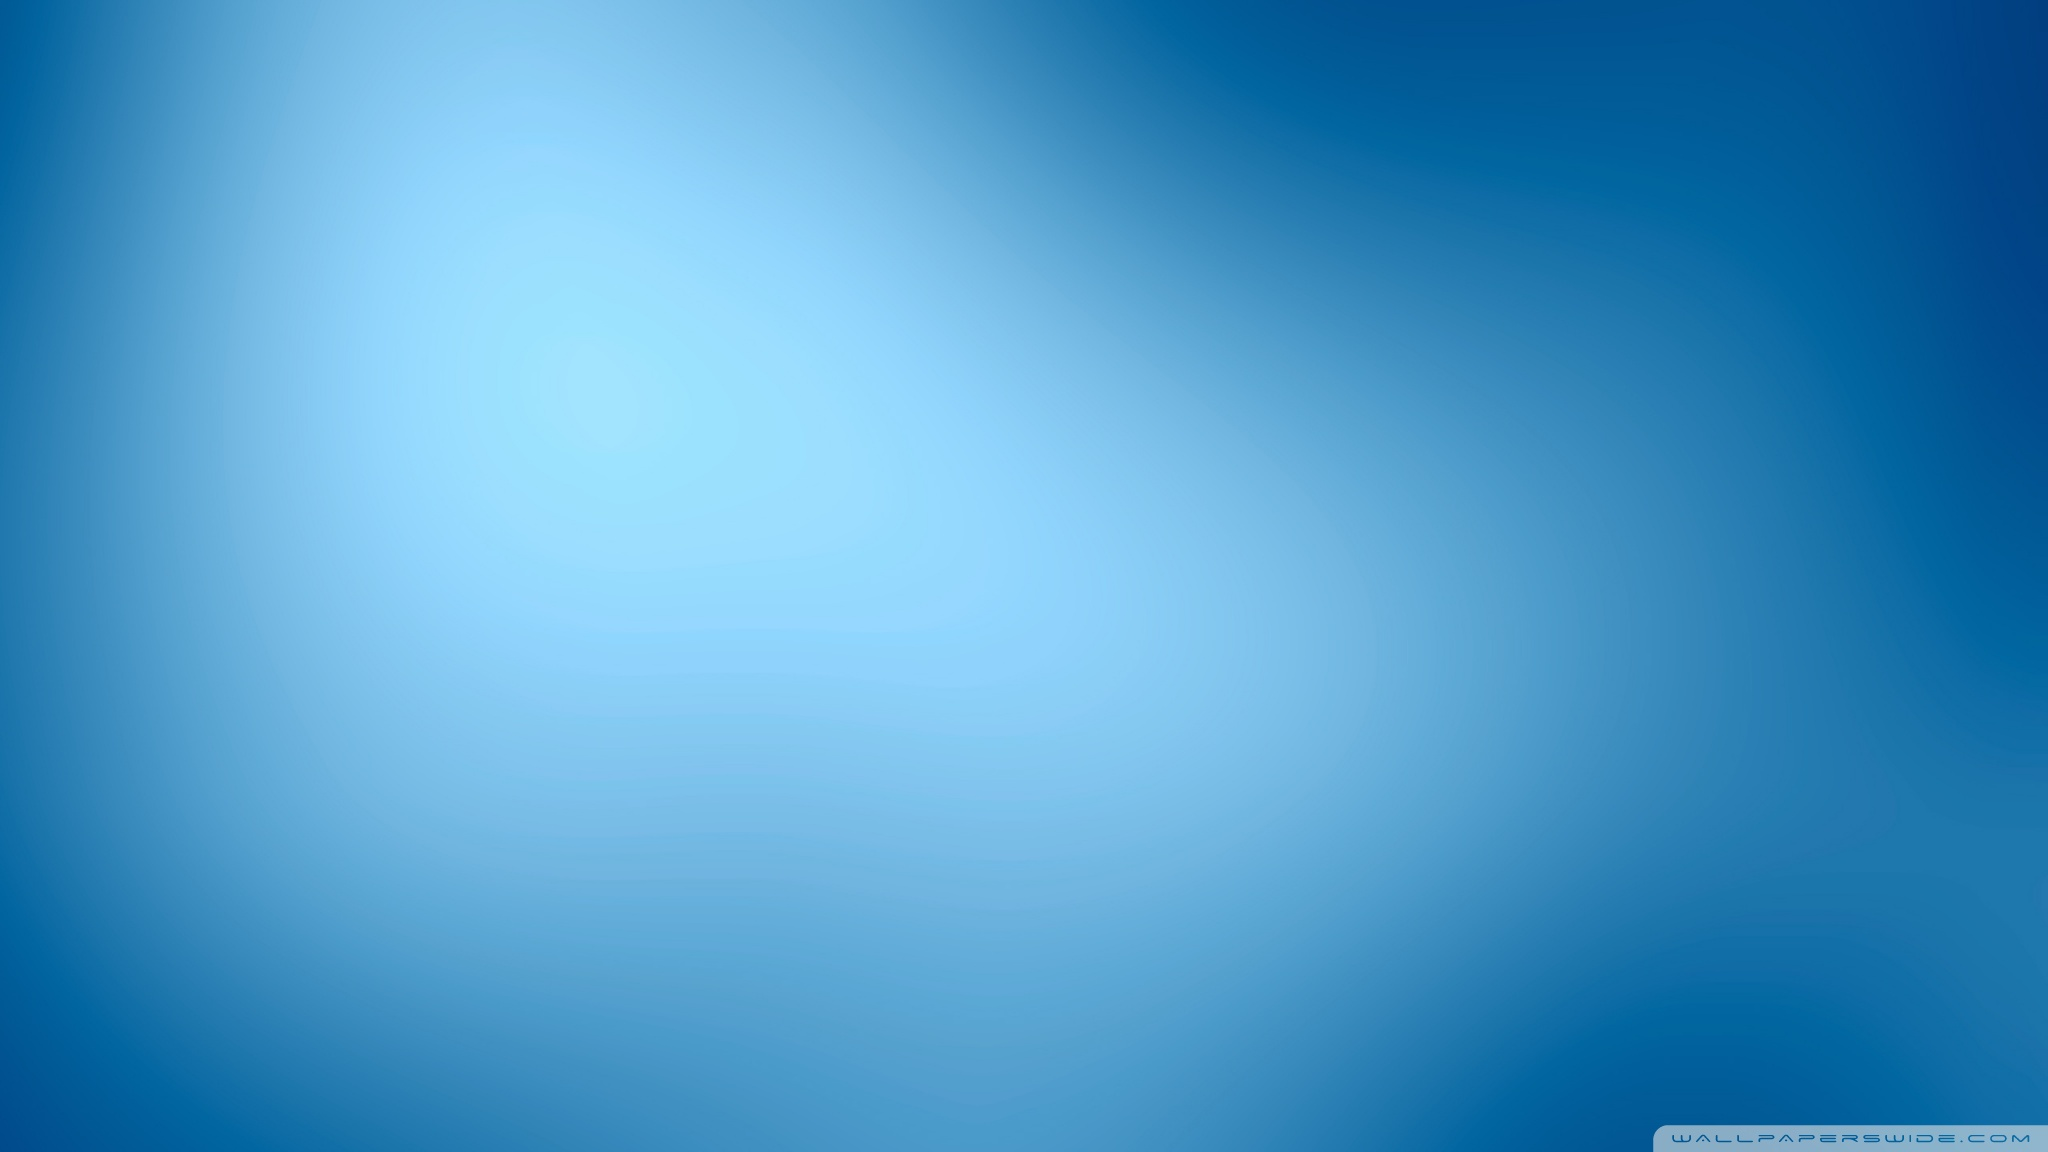 2048x1152 Blue Background Abstract blue backgrounds 12 2048x1152